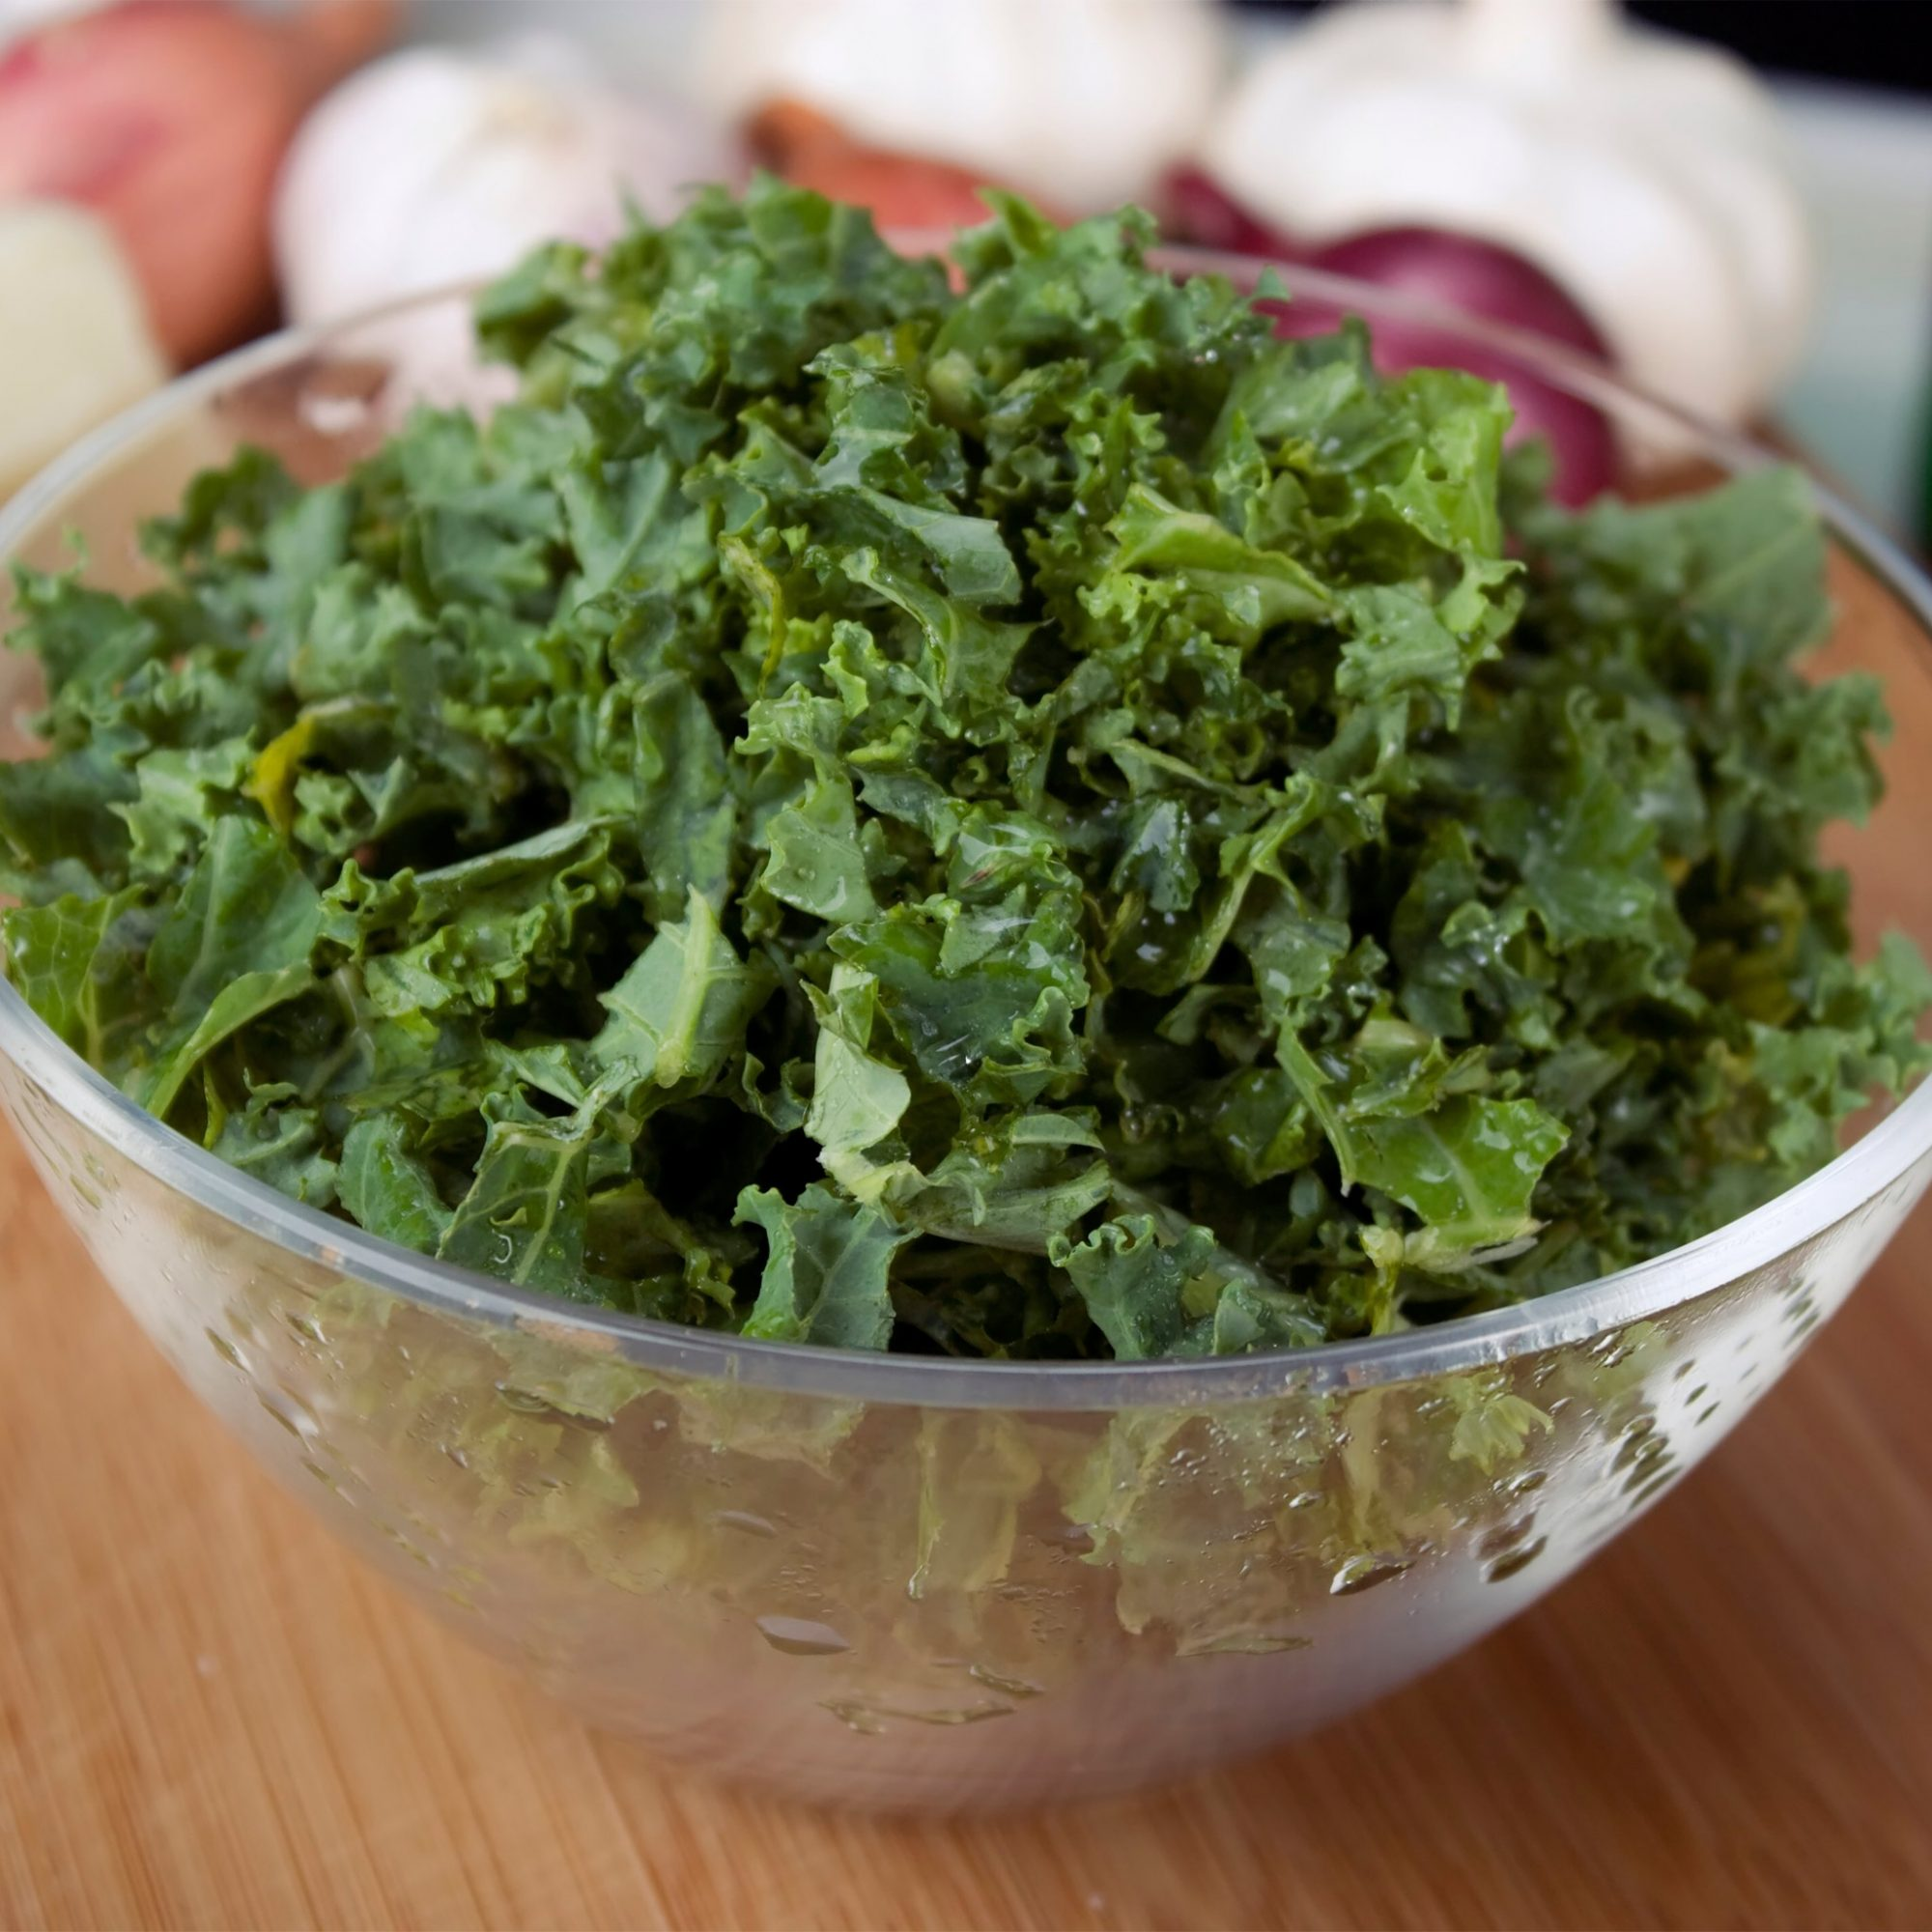 My Name is Kale